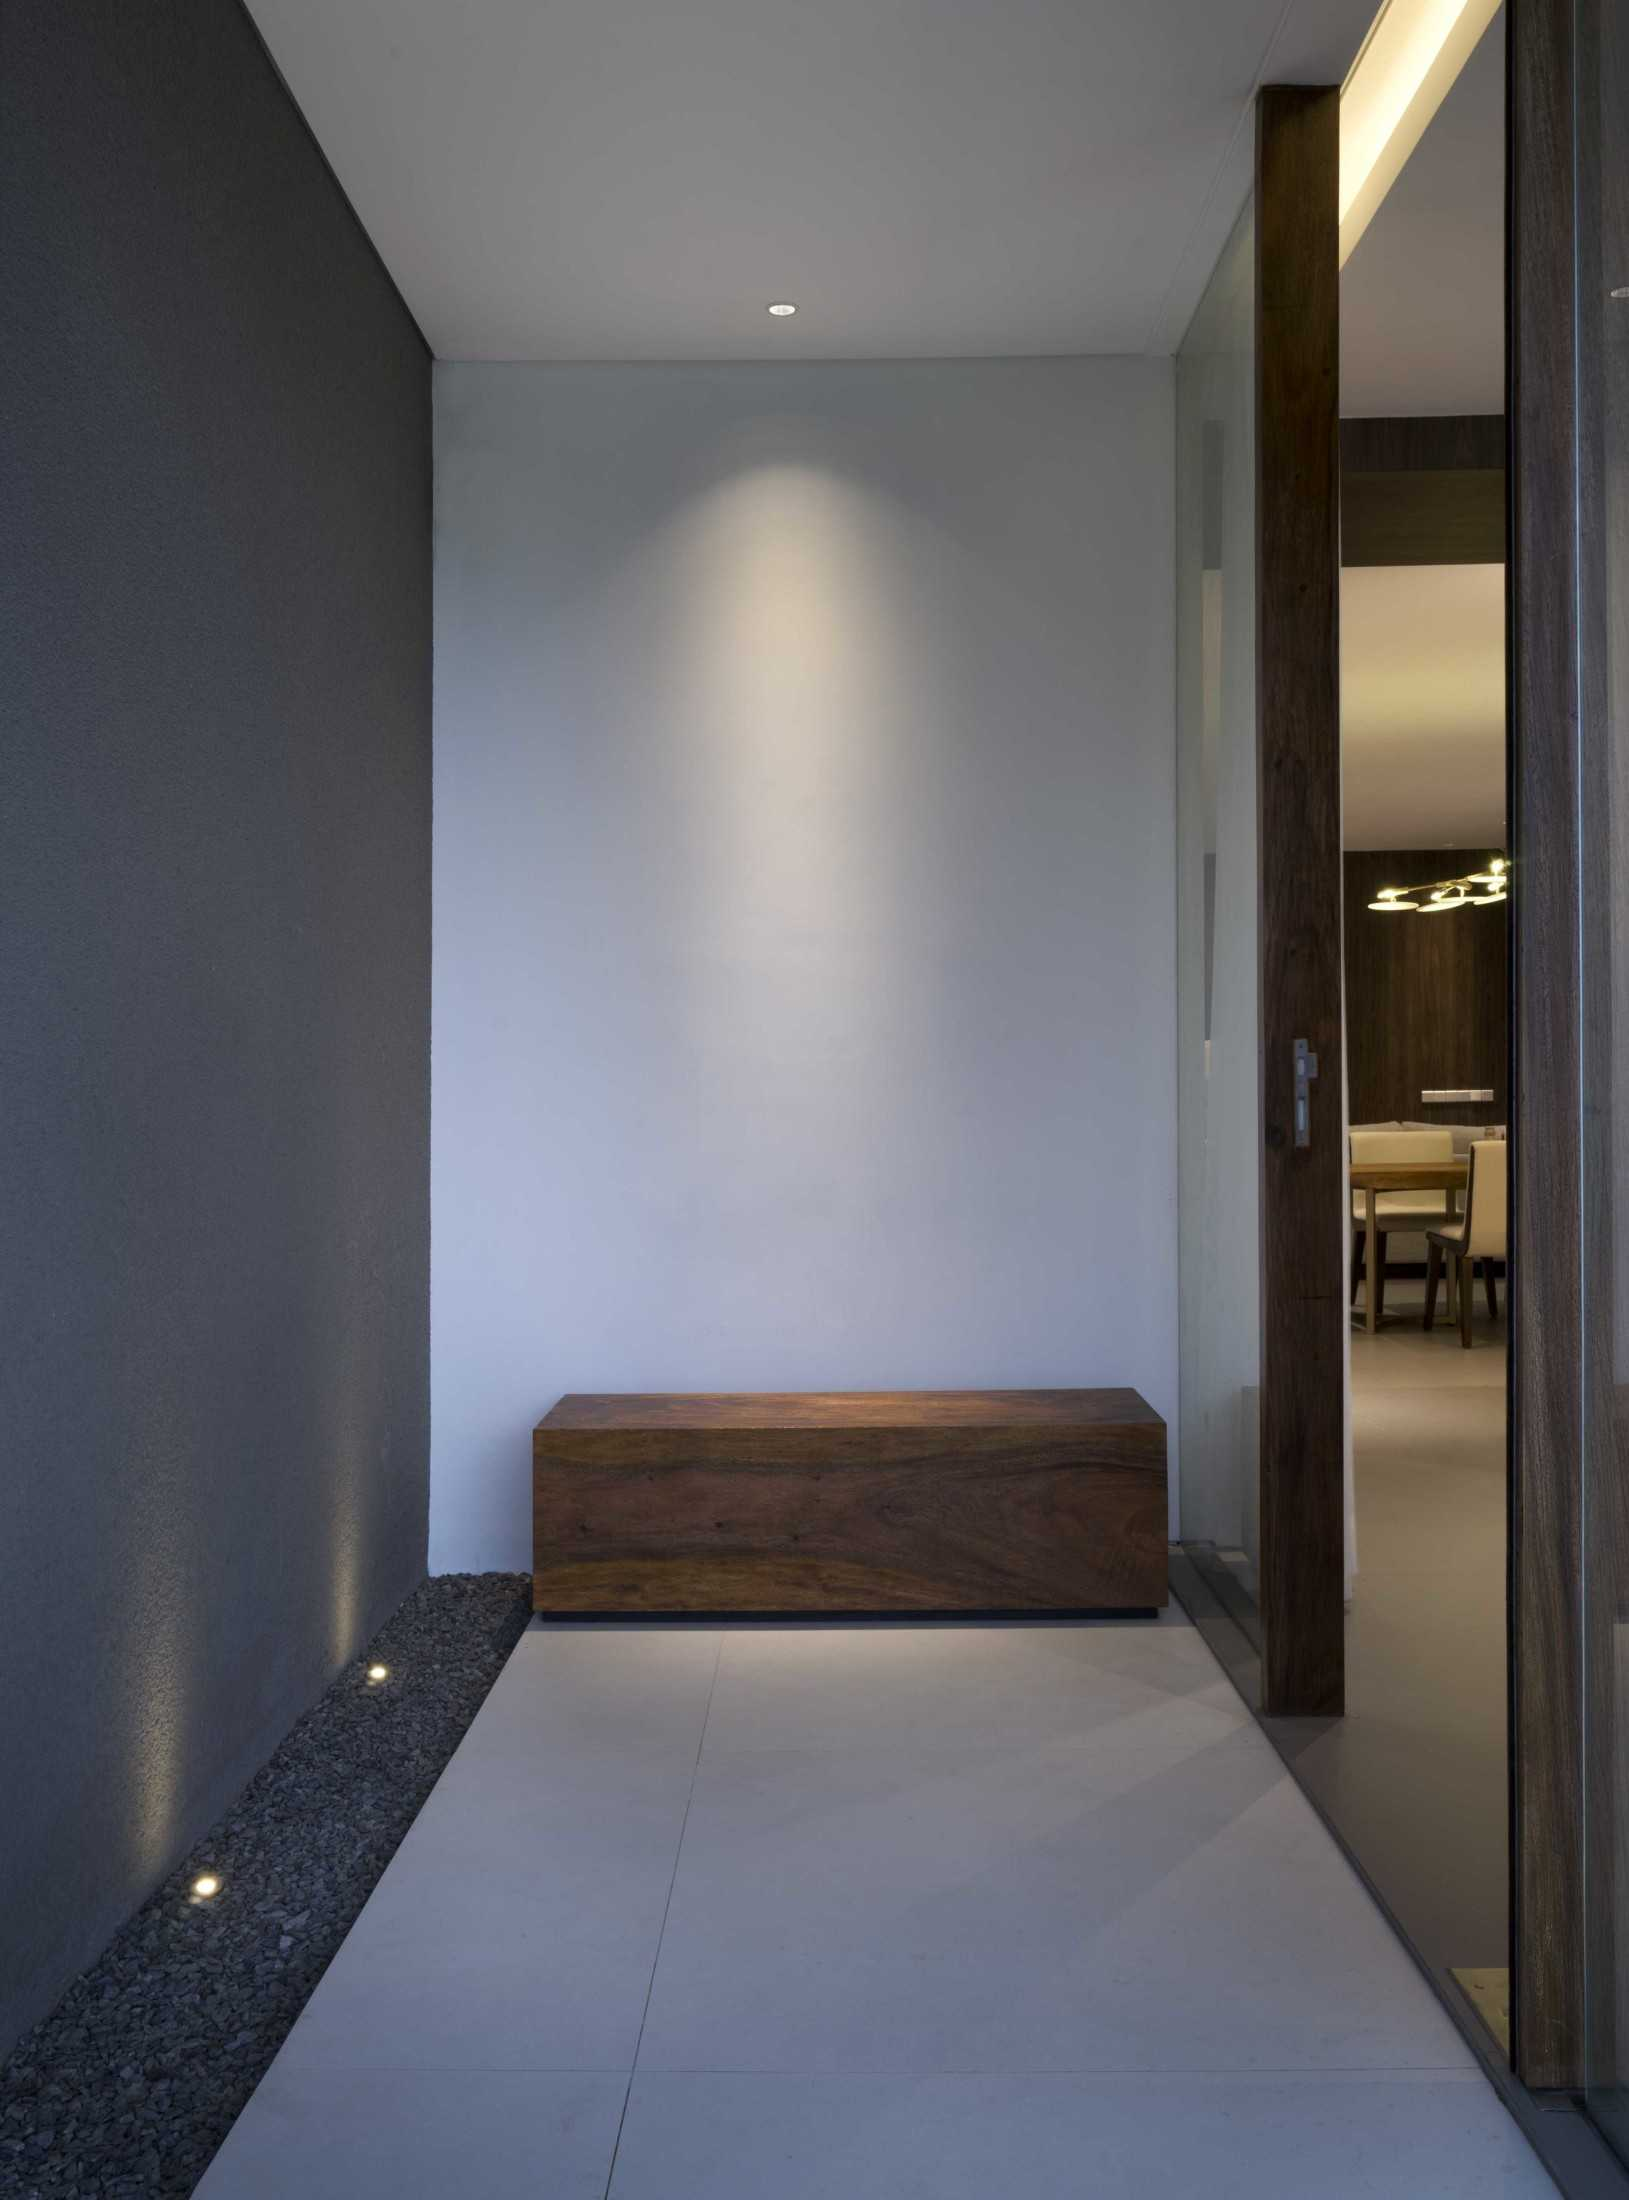 Simple Projects Architecture 'hhh' House Surabaya, Kota Sby, Jawa Timur, Indonesia  Simple-Projects-Architecture-Hhh-House  75041